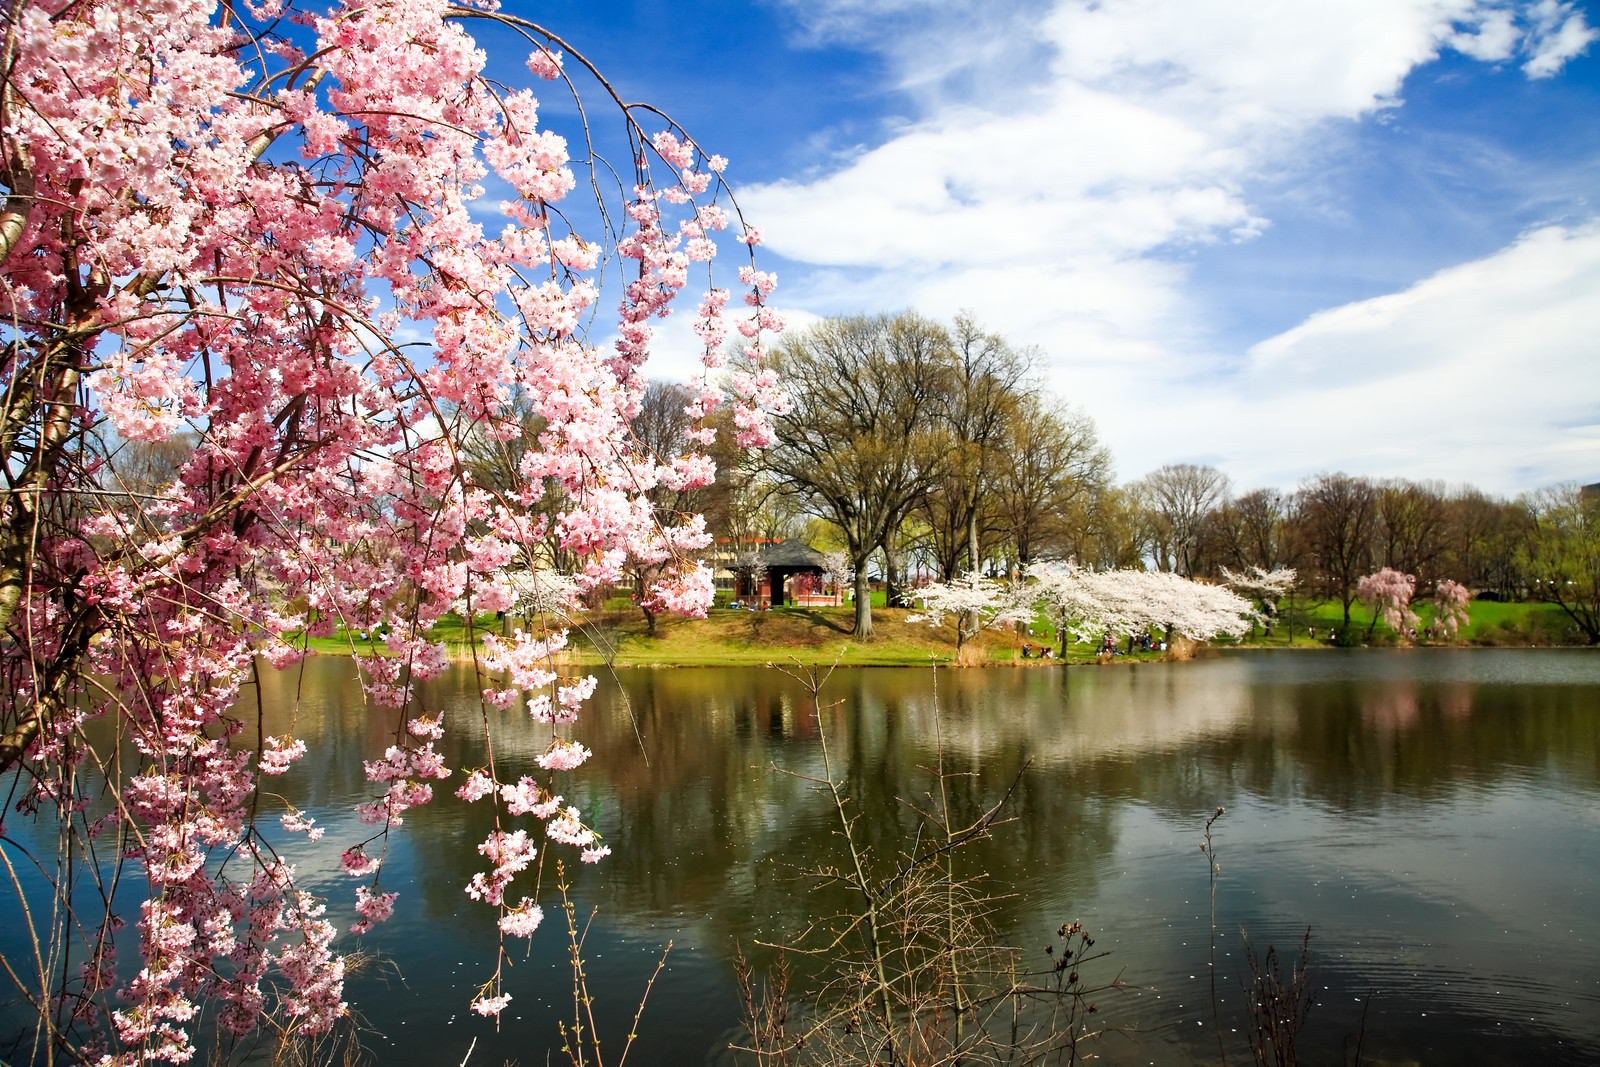 Photo at branch brook park looking across the lake with a close up of a pink cherry blossom and white and pink further away during The cherry blossom festival on a sunny day with blue skies